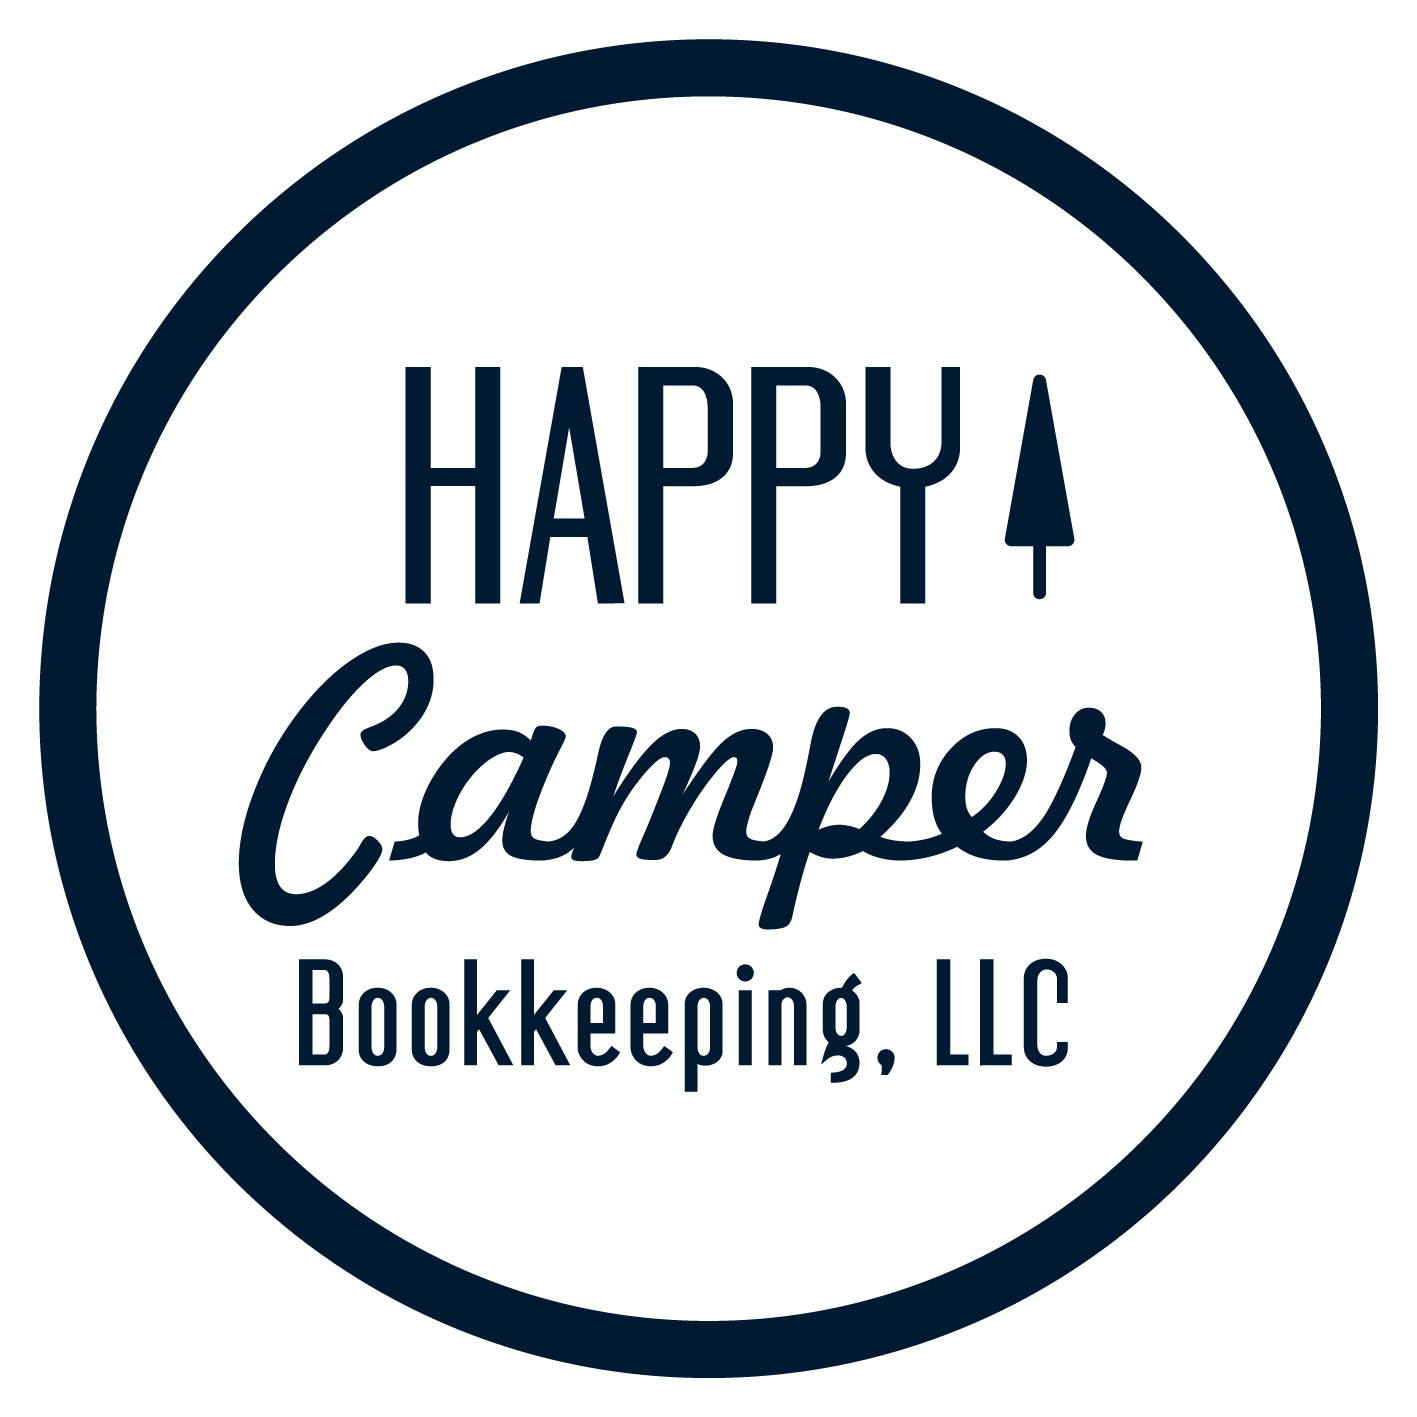 Happy Camper Bookkeeping